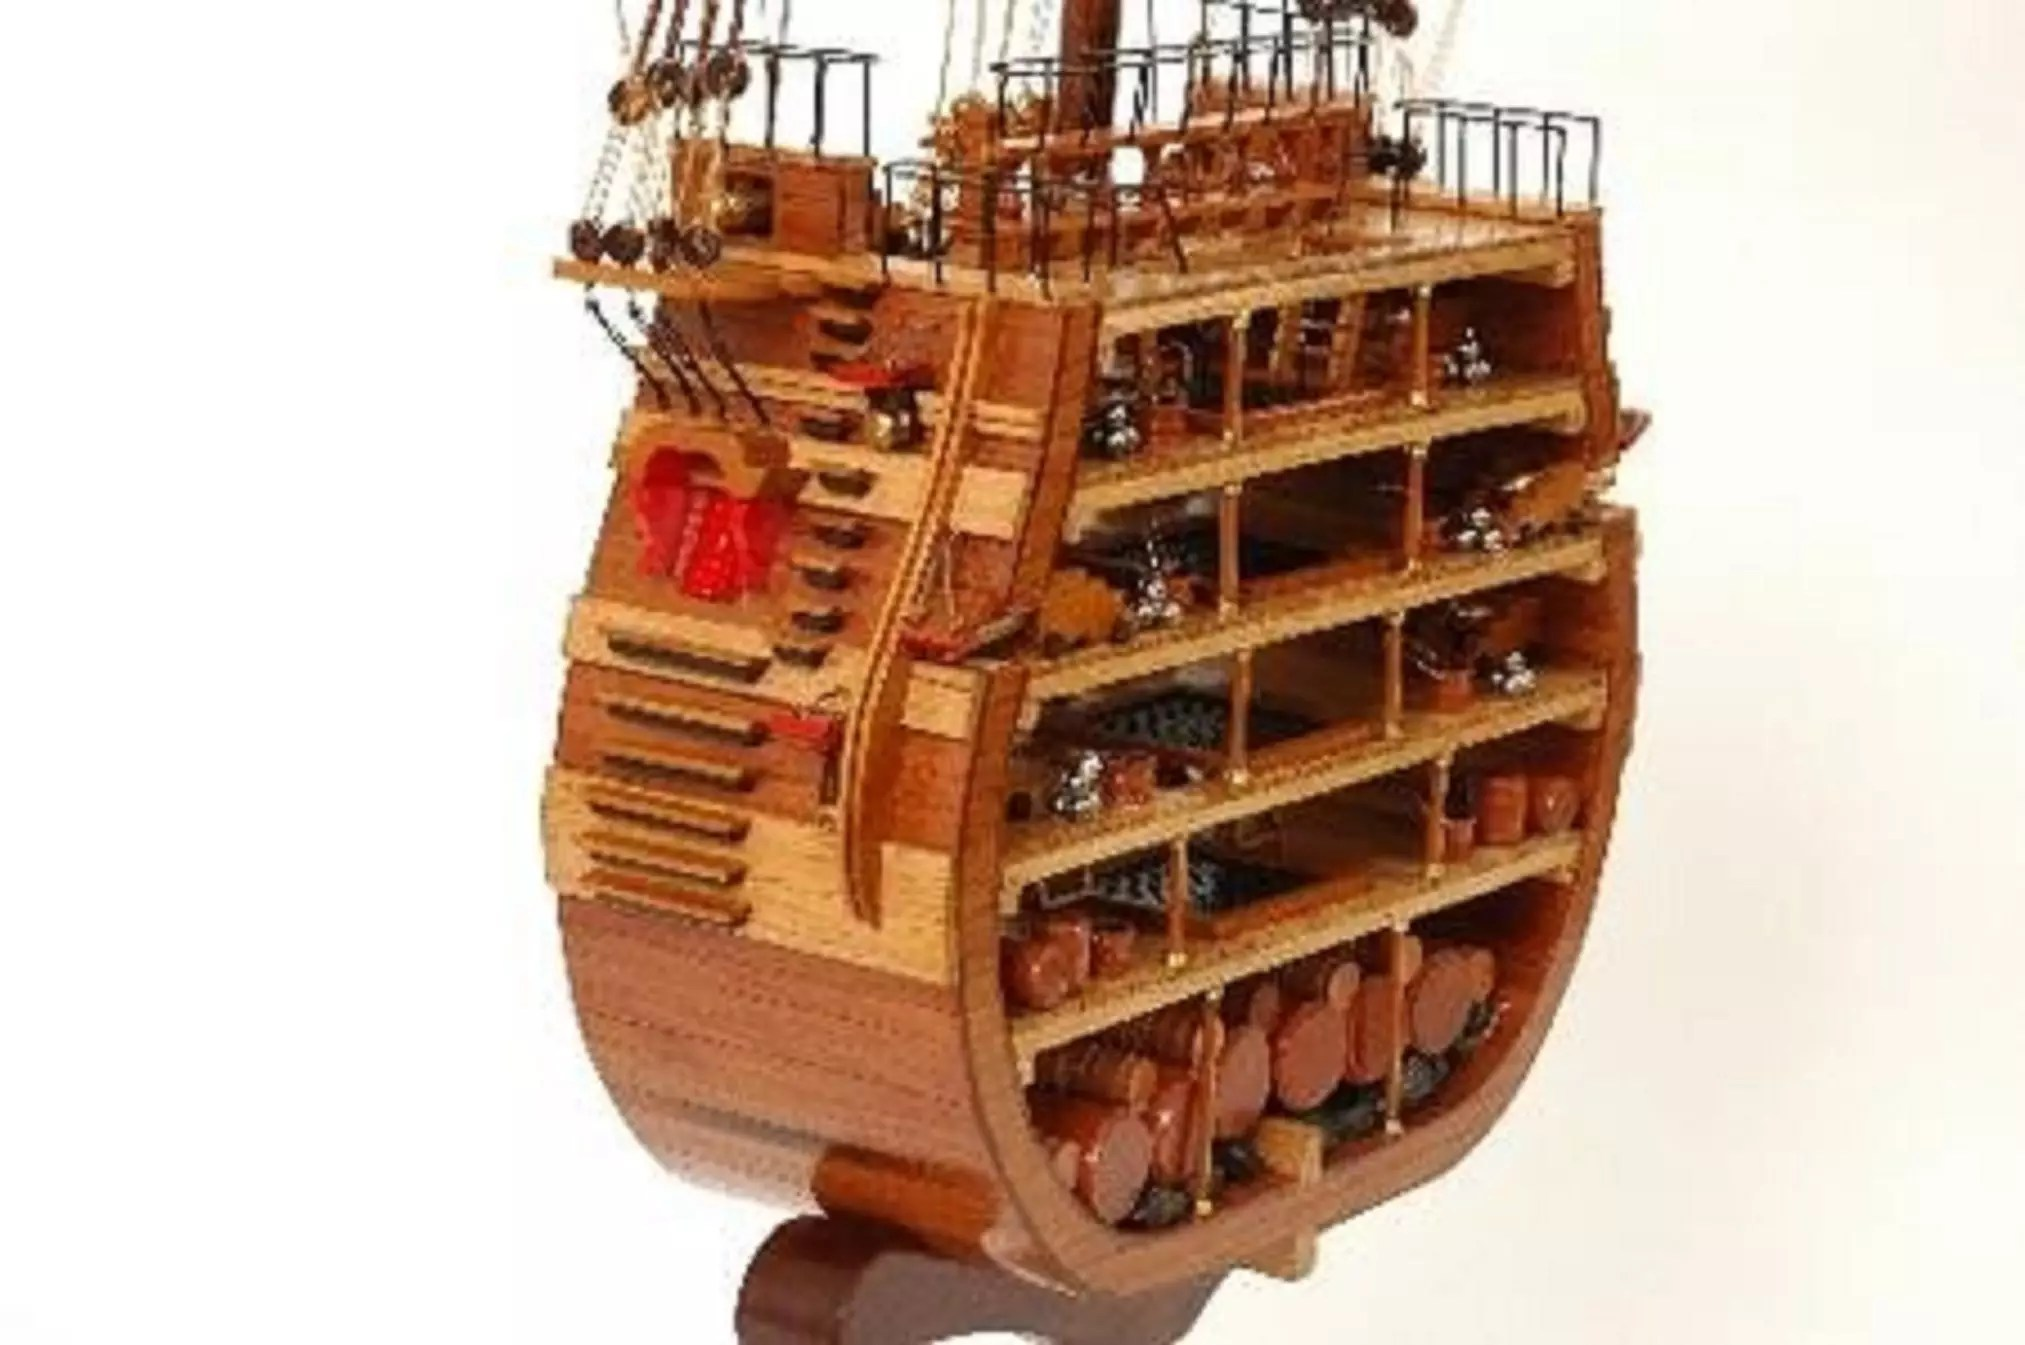 Hms Victory Cross Section Model Ship Premier Range Wooden